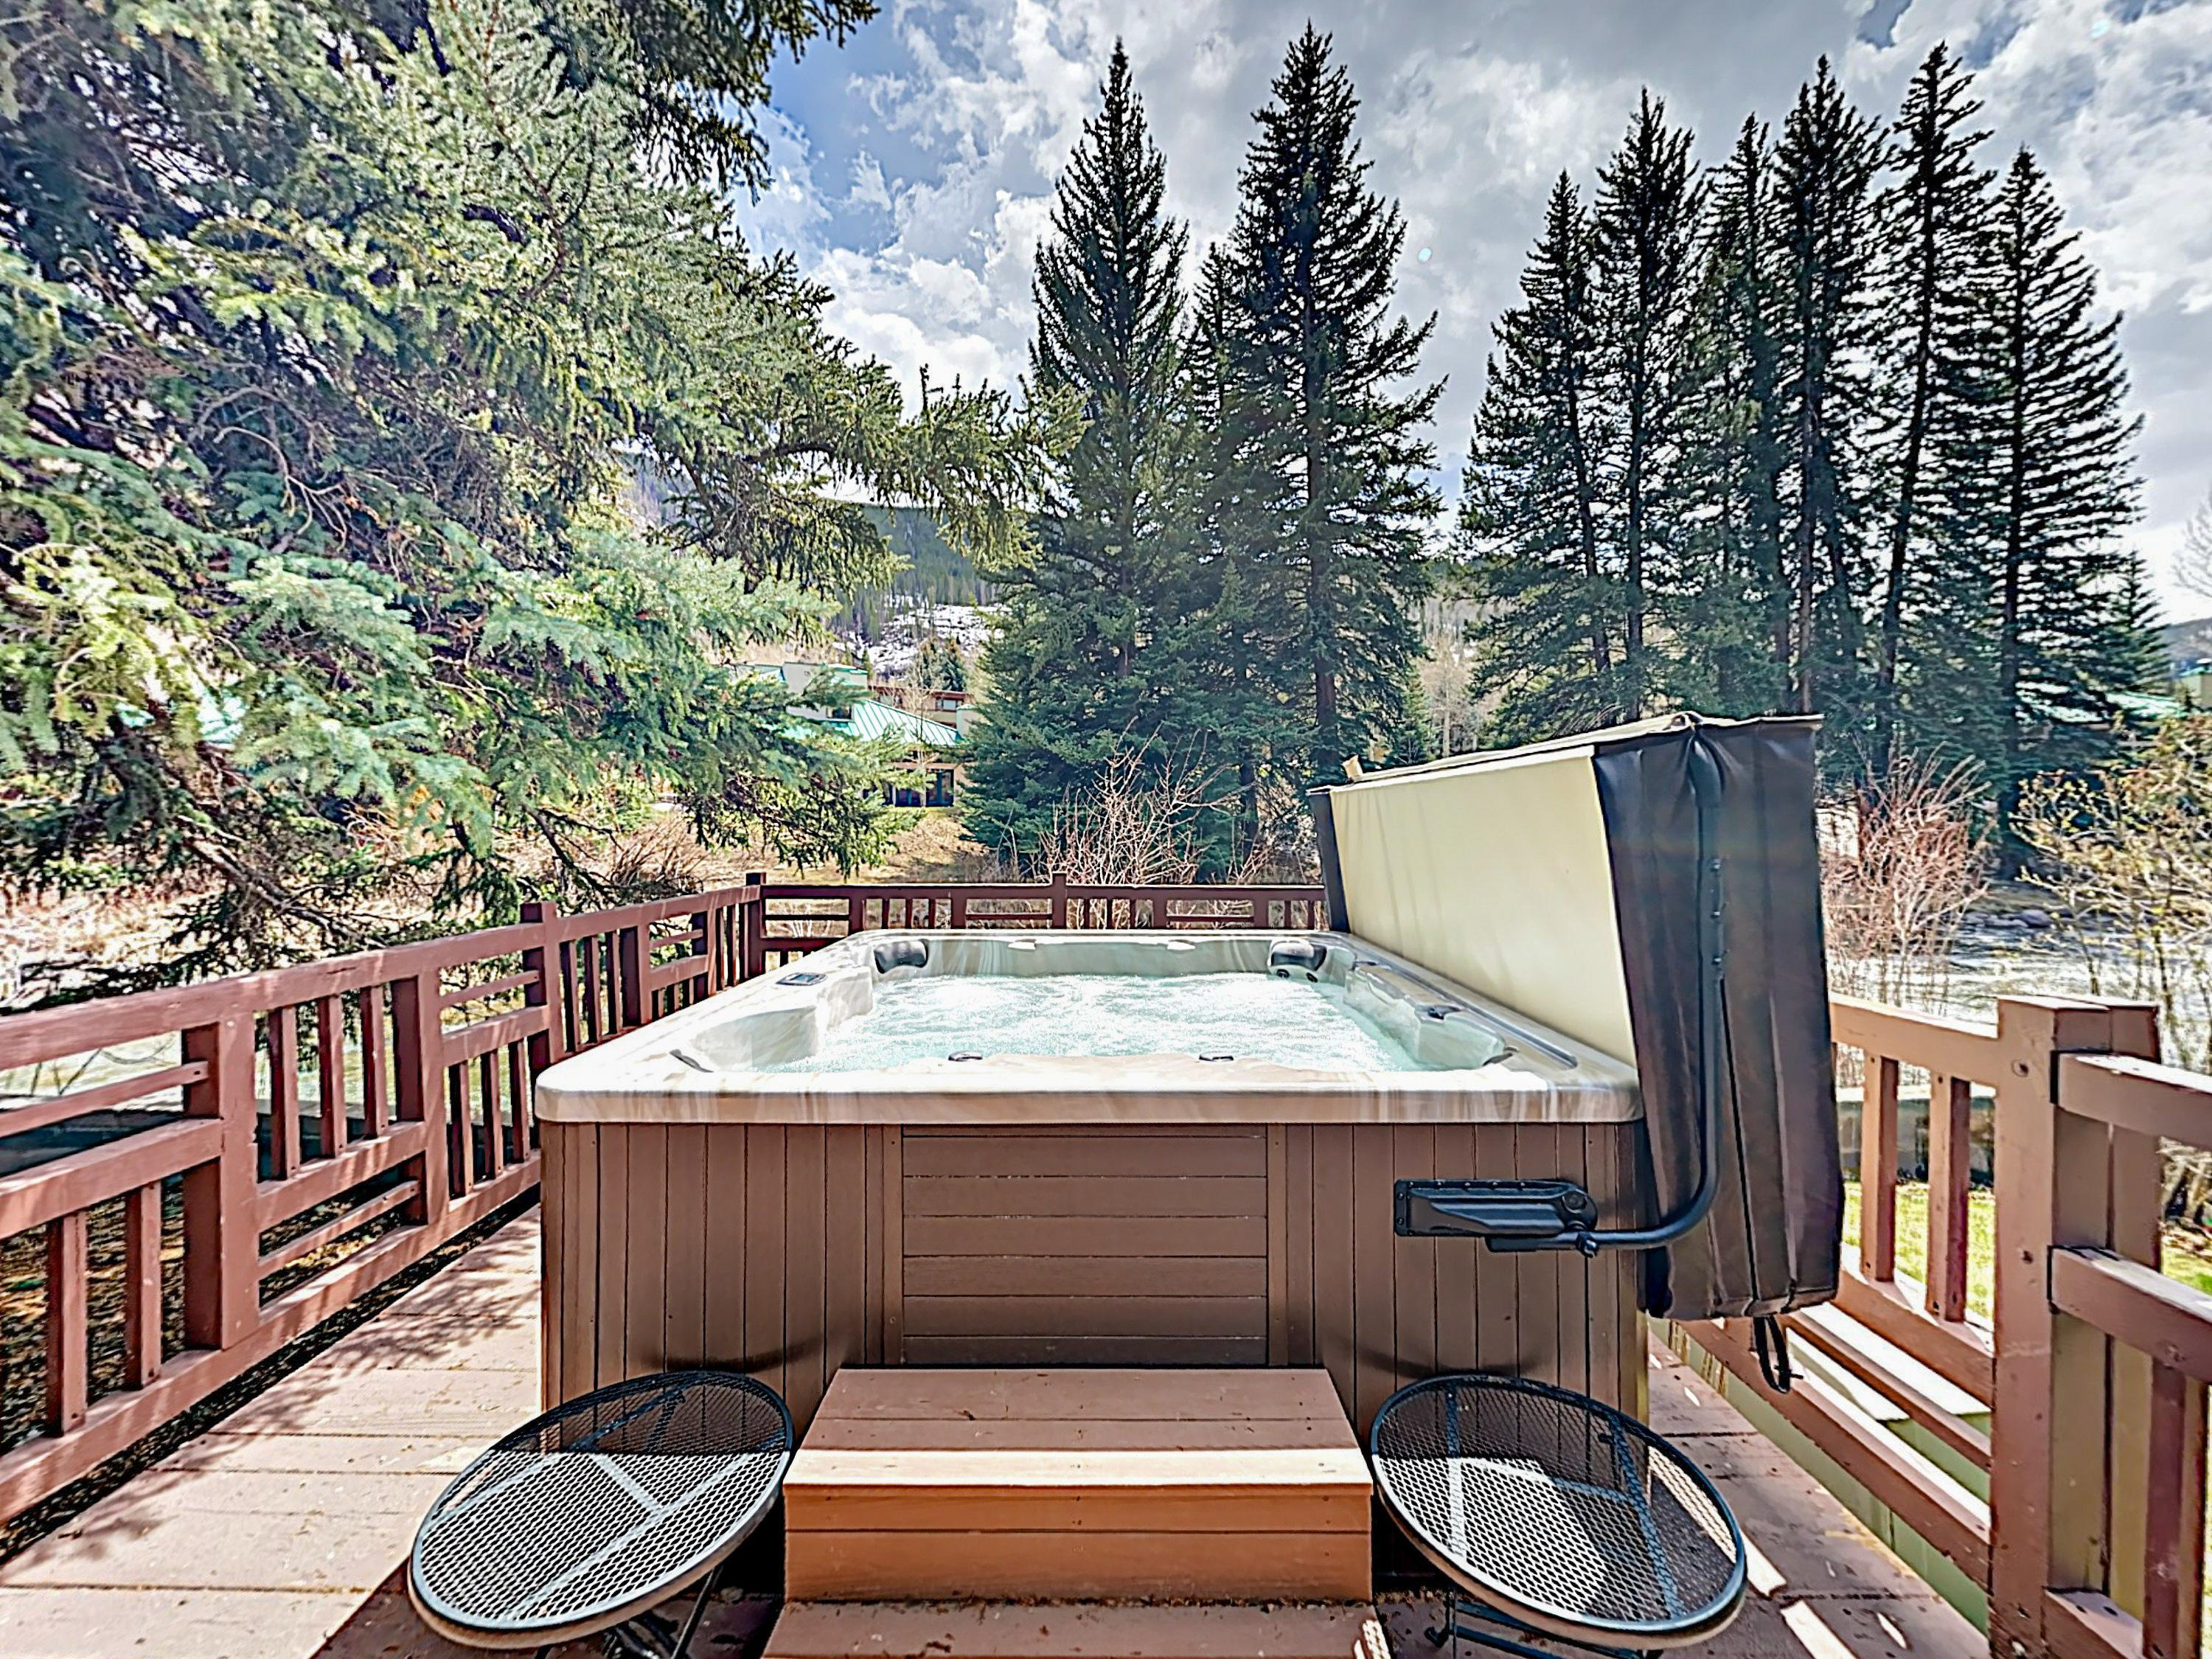 Property Image 2 - New Listing! Spacious Gore Creek Cabin w/ Hot Tub